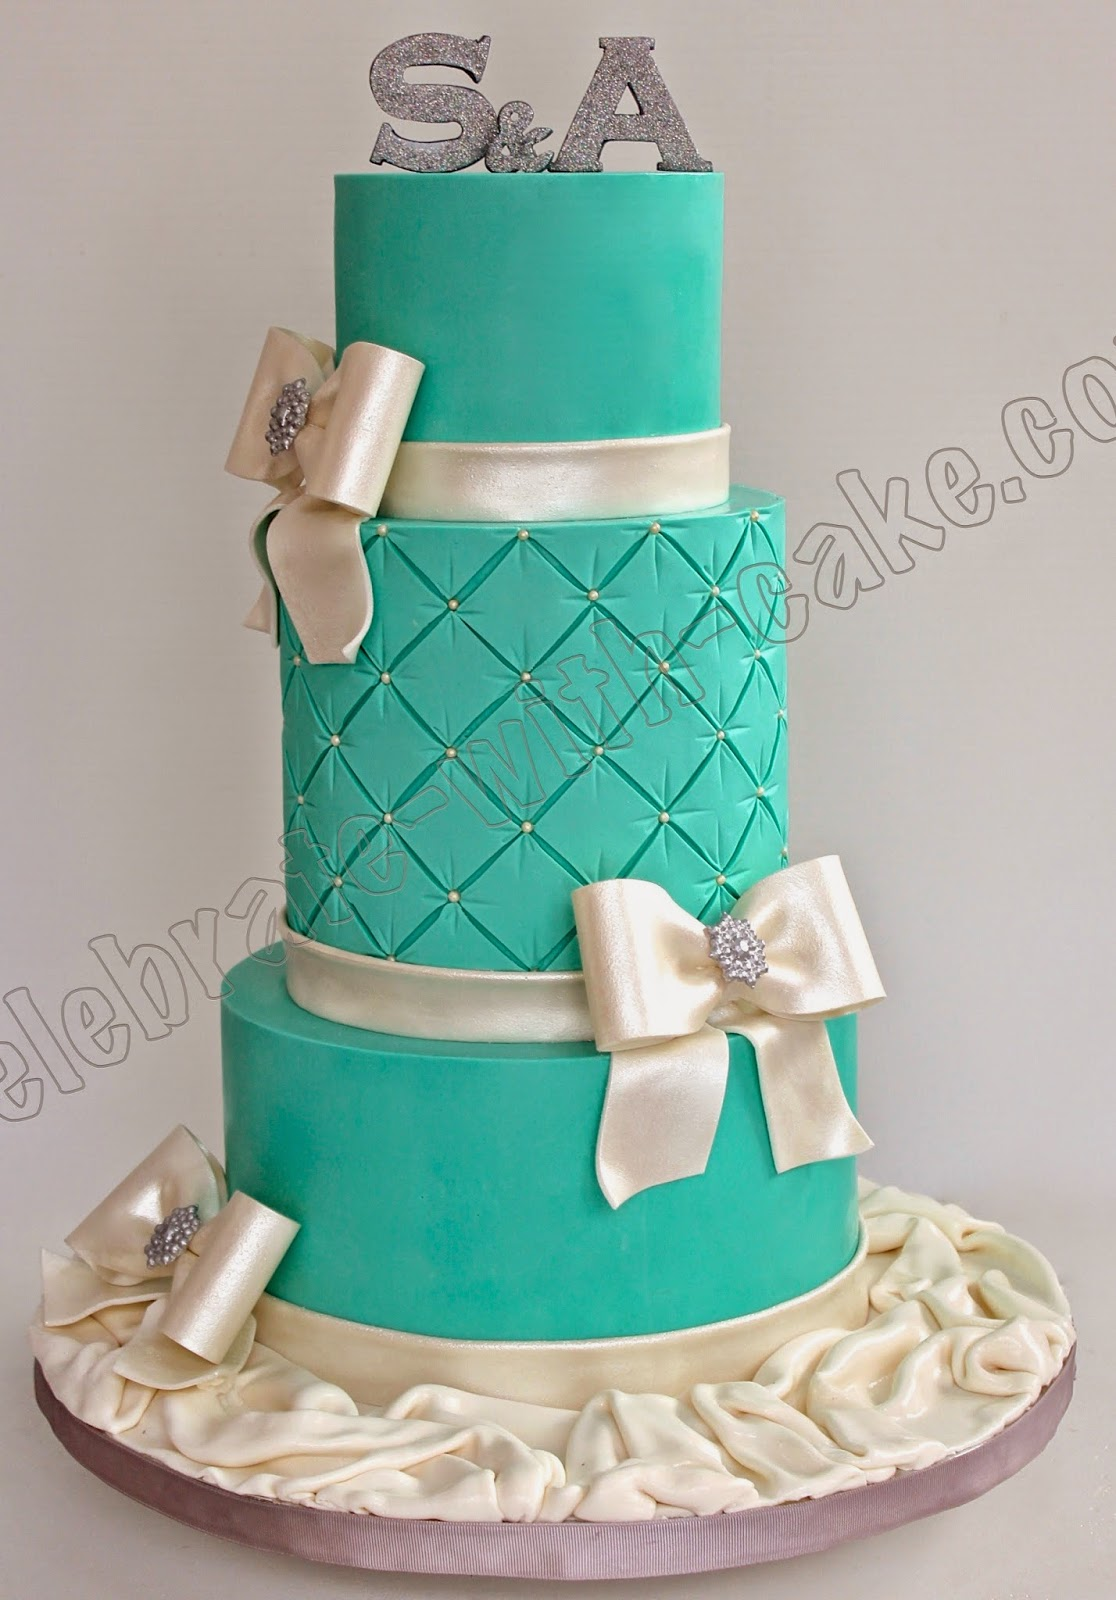 Celebrate with Cake Elegant 3 tier Wedding